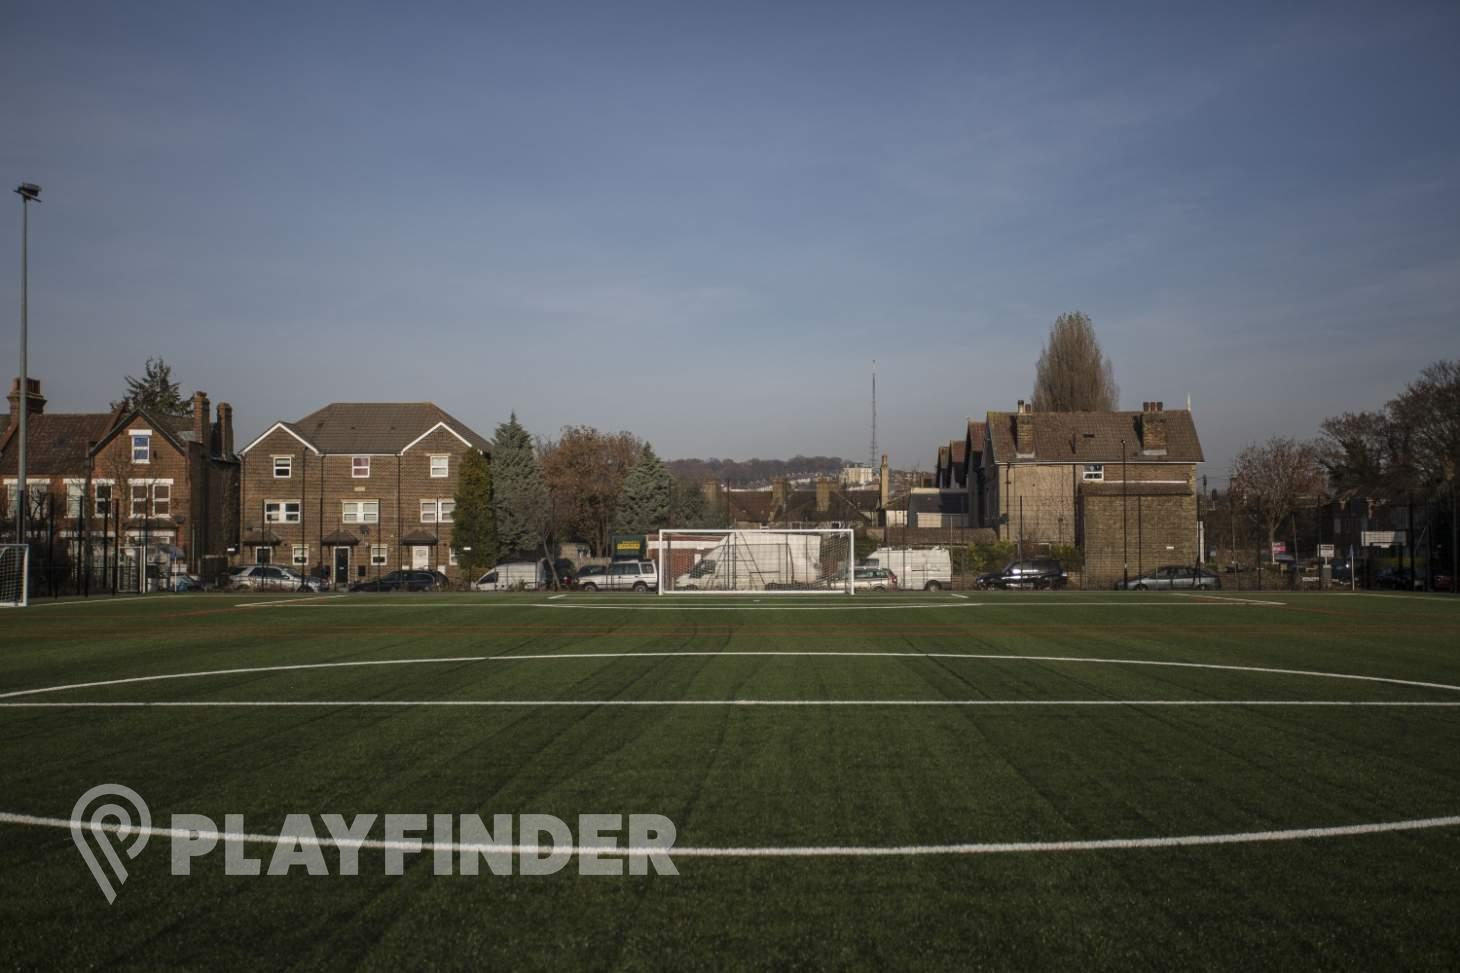 Selhurst Sports Arena 5 a side | 3G Astroturf football pitch